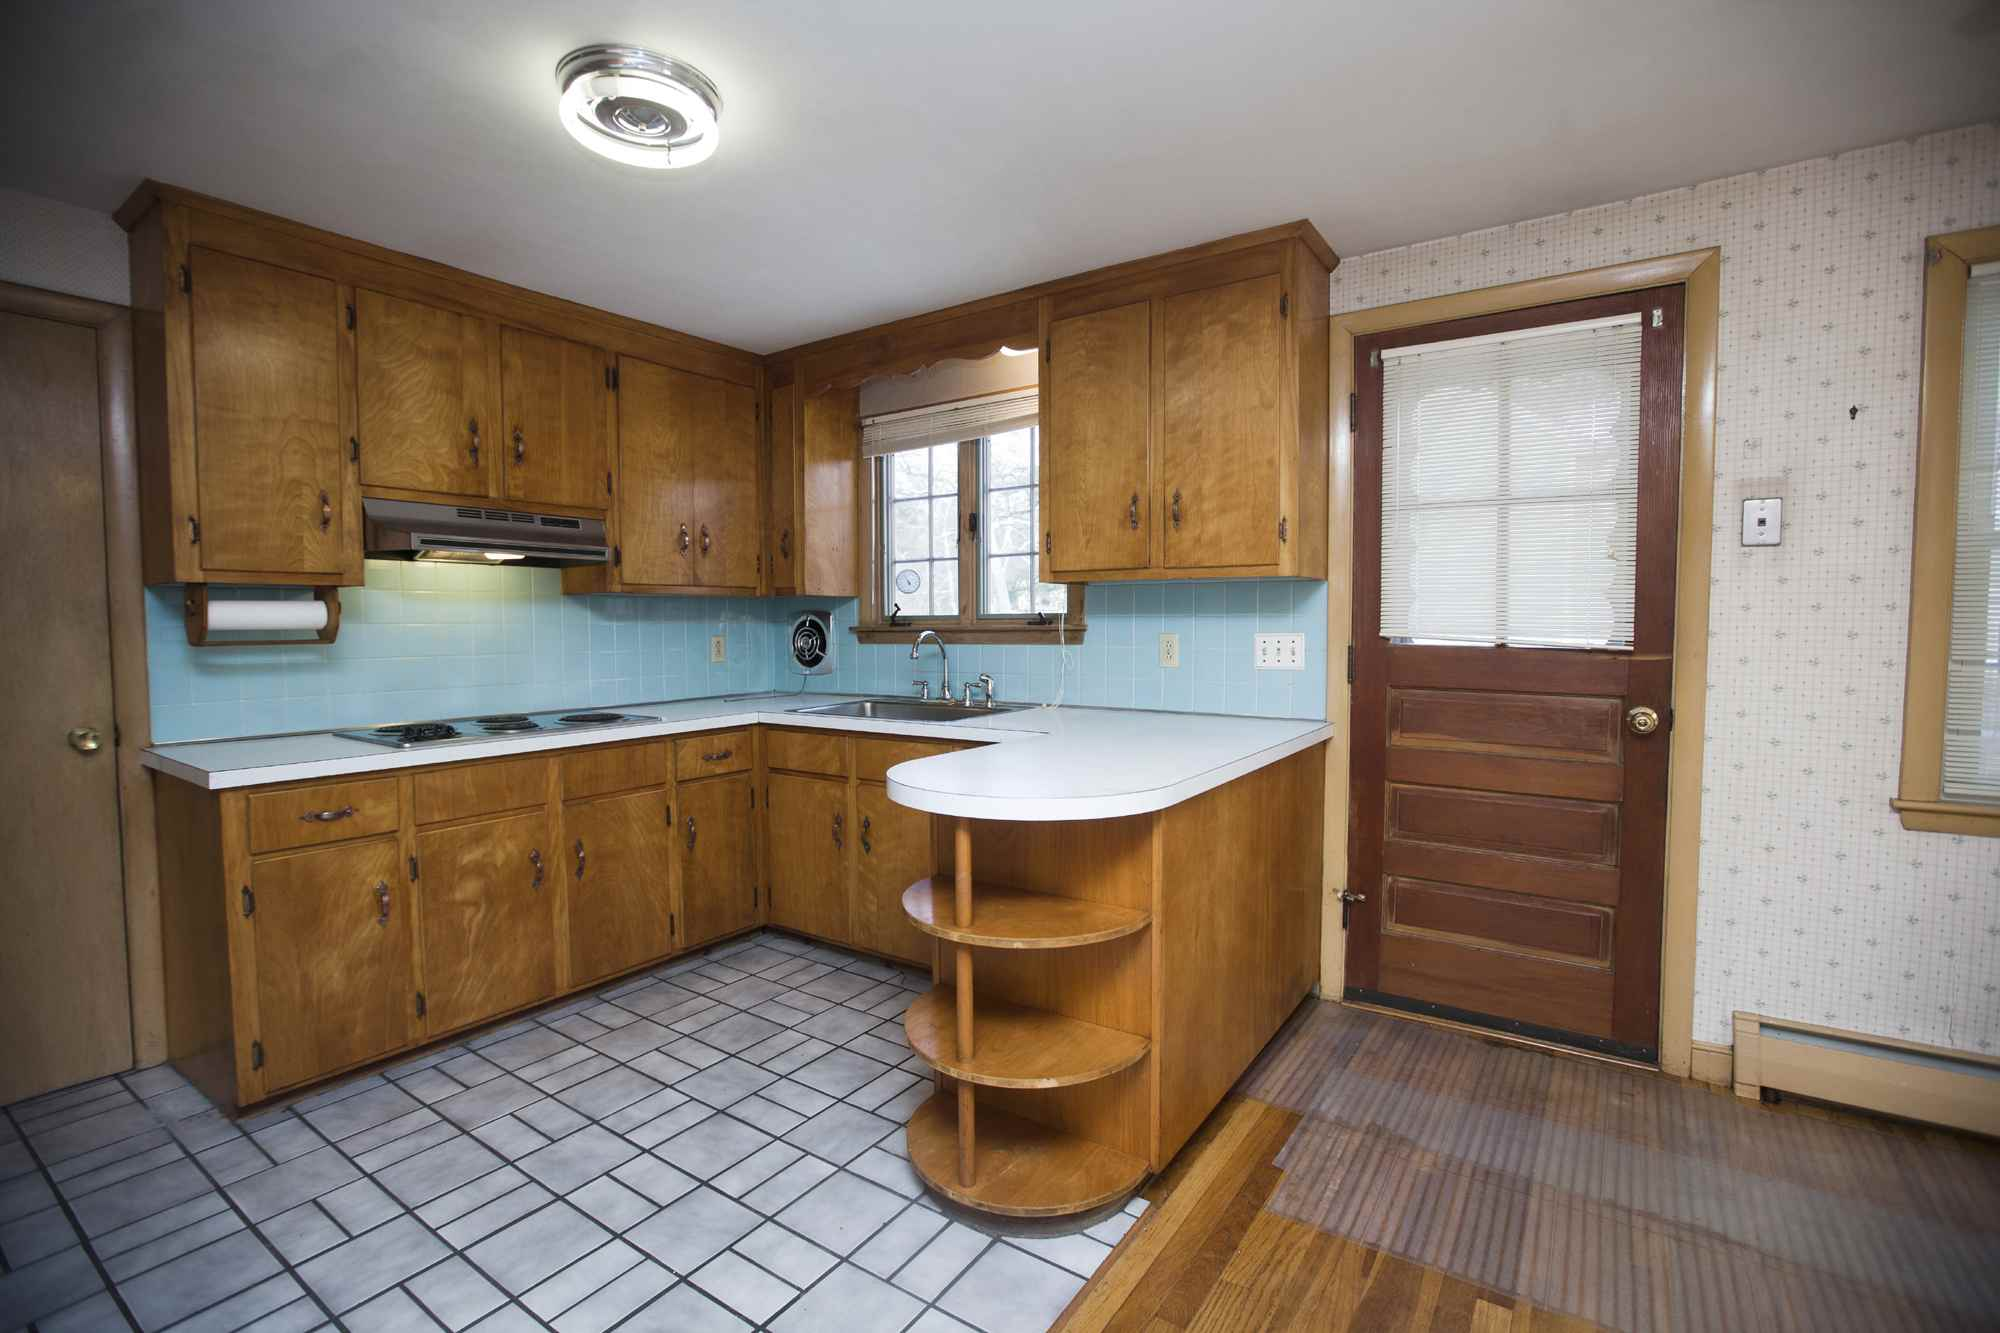 kitchen linoleum faucet water filter a collection of flooring examples